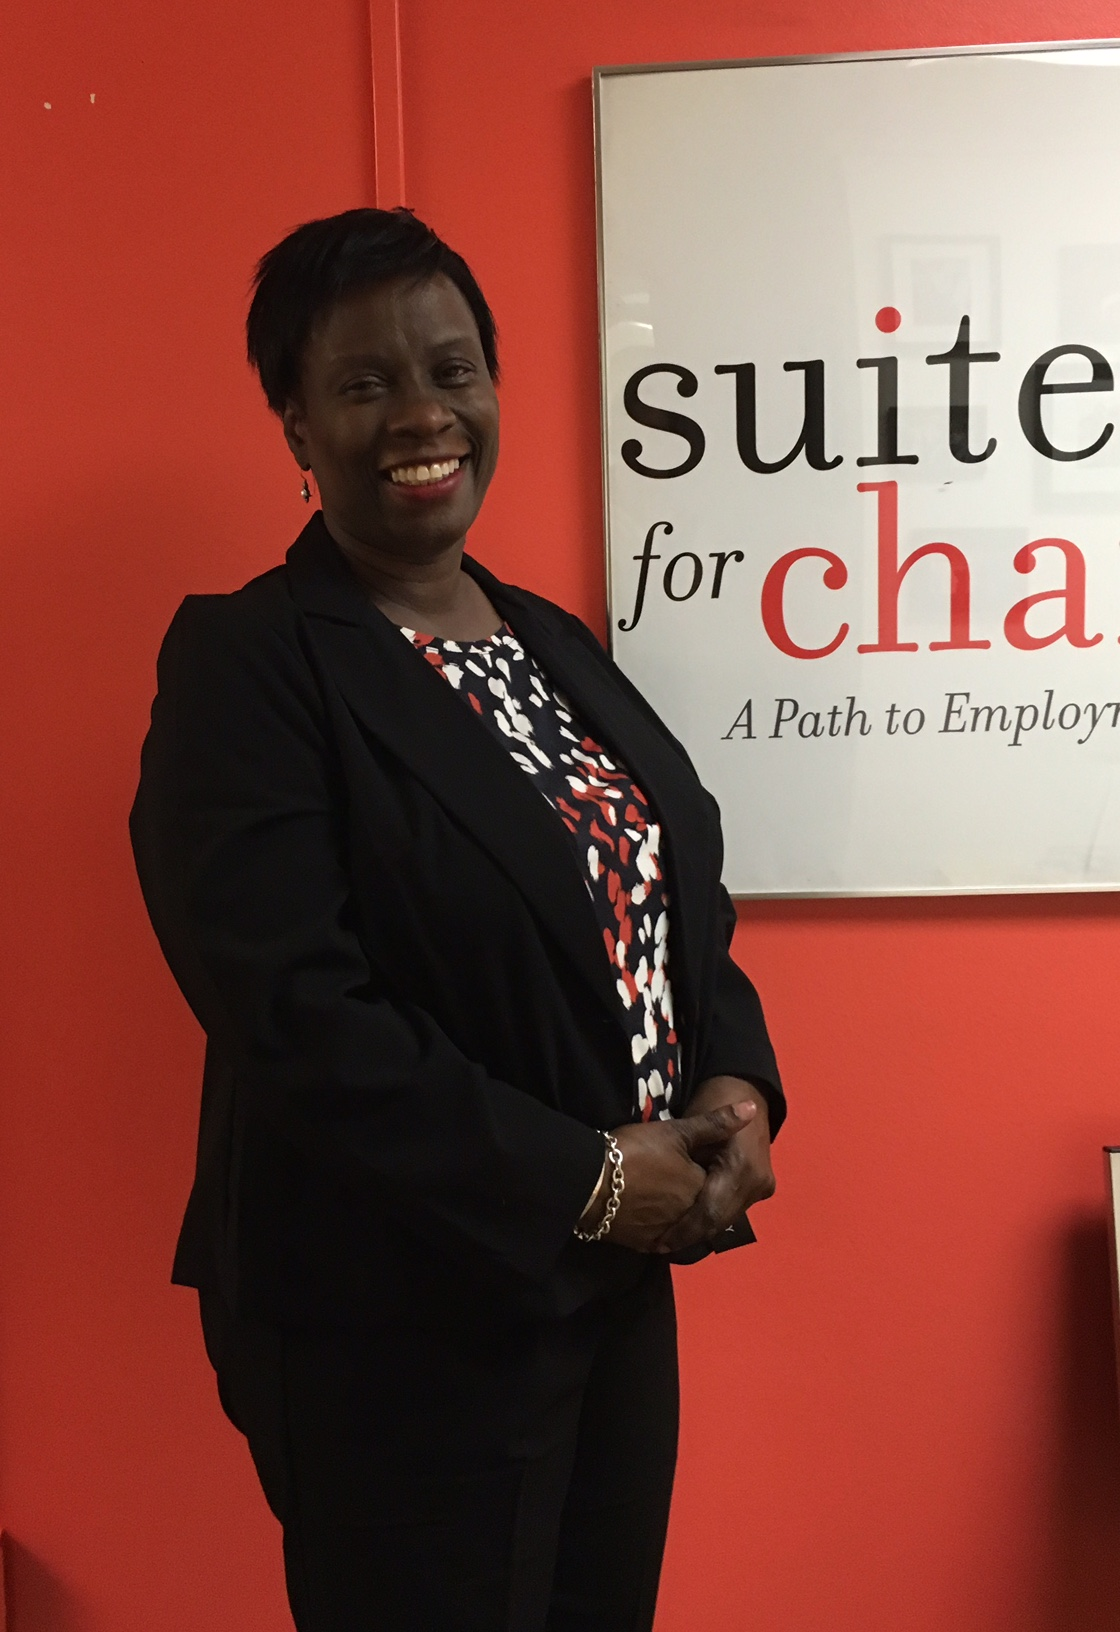 Client at Suited for Success (Washington, D.C.)